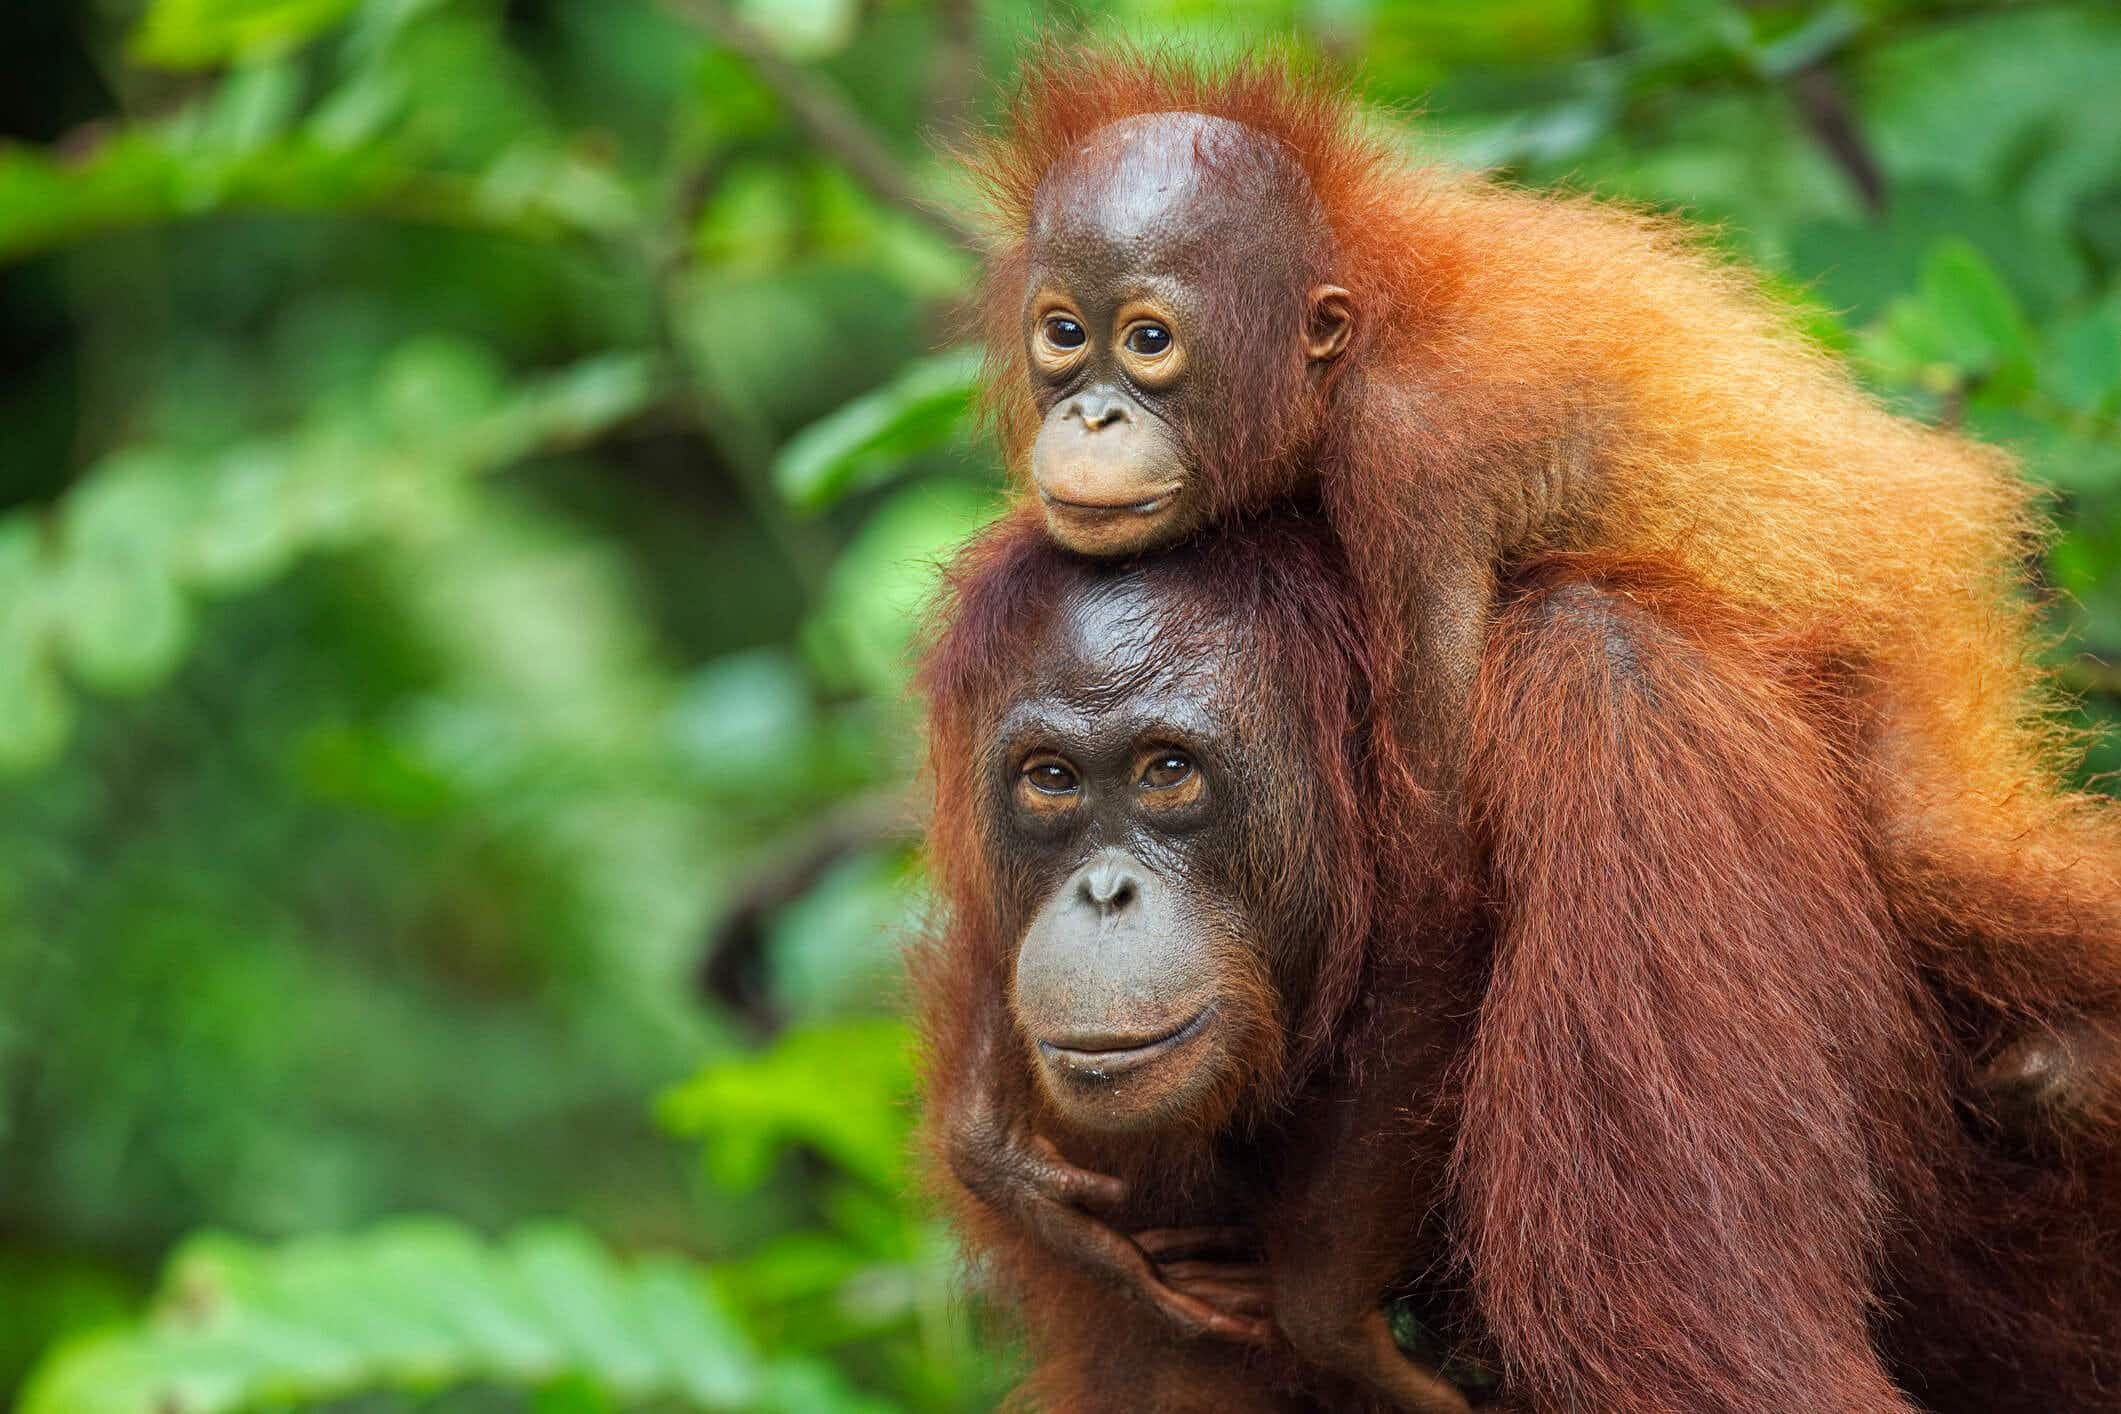 Experience close encounters of the wild kind on this epic tour of Borneo